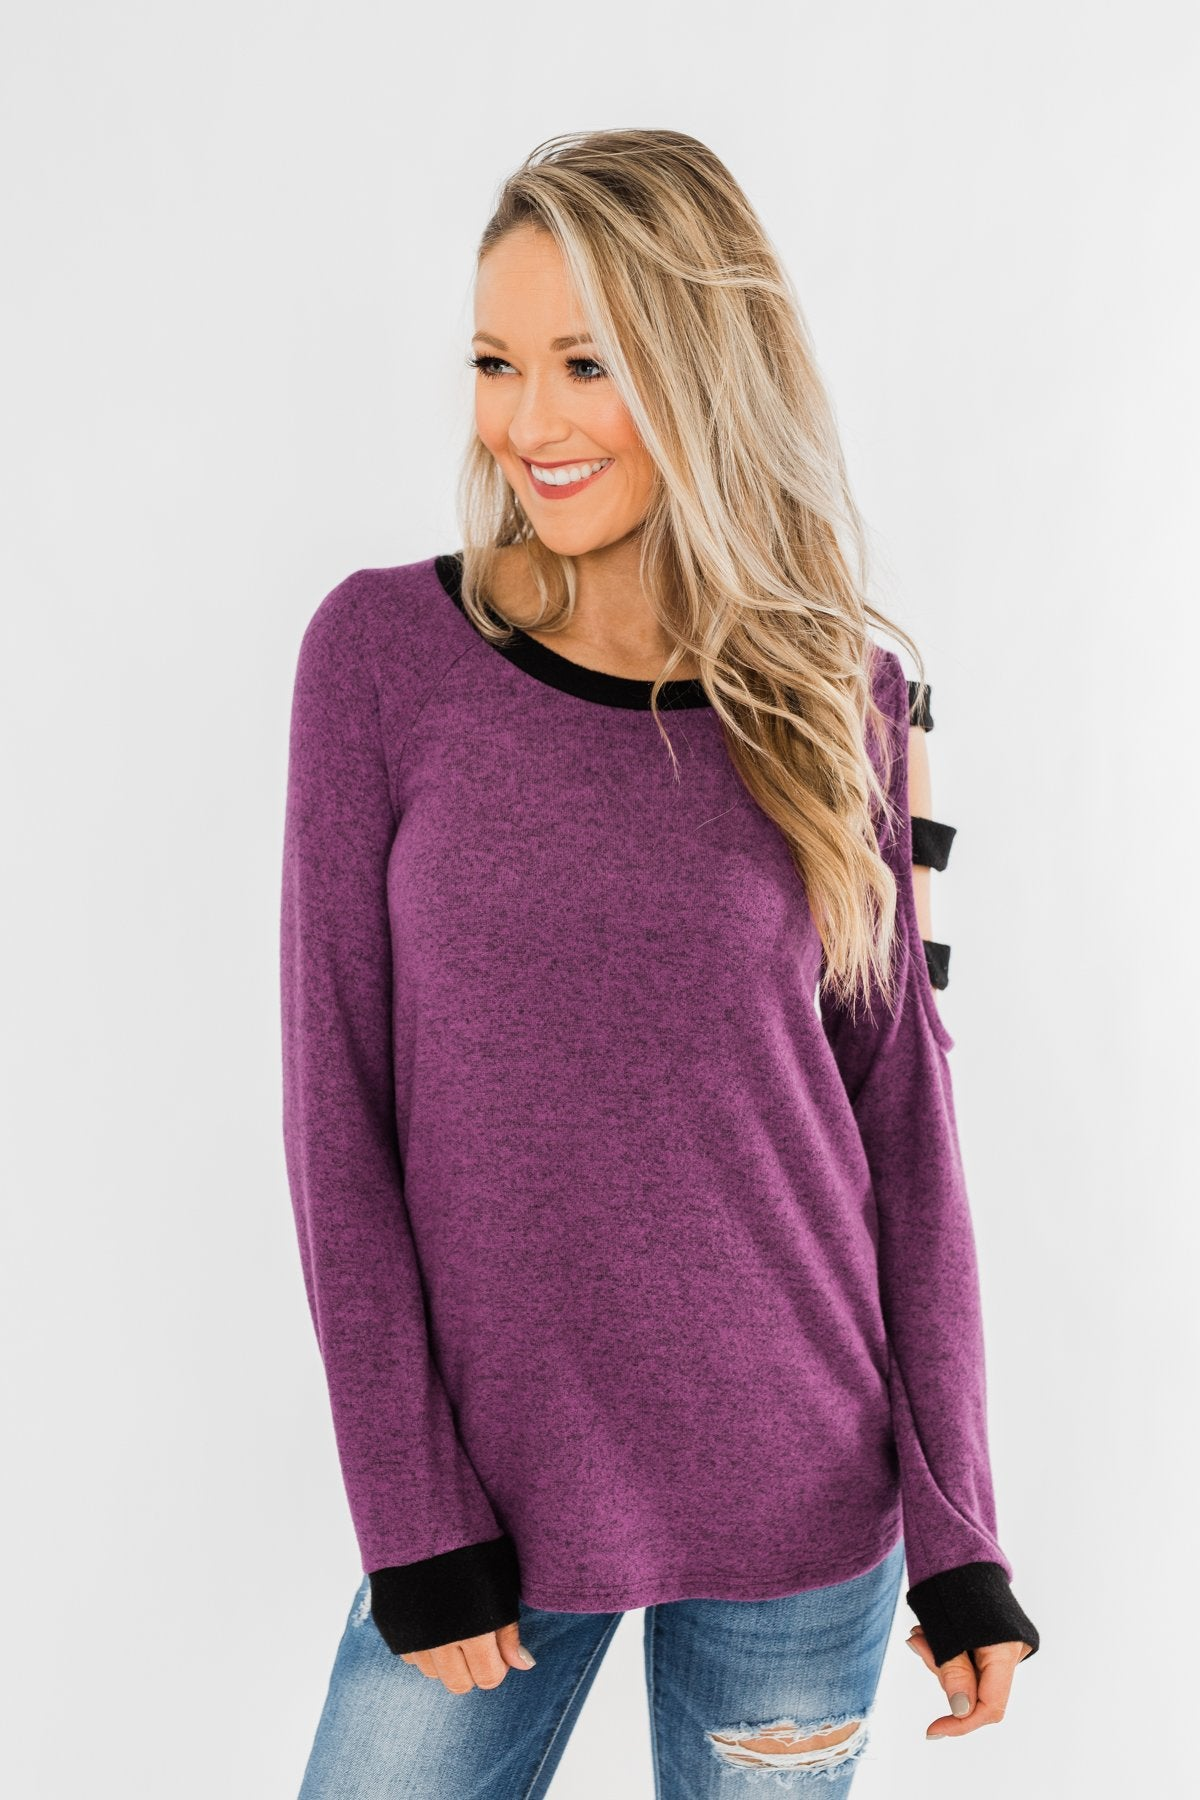 Chasing Dreams Cold Shoulder Top- Plum